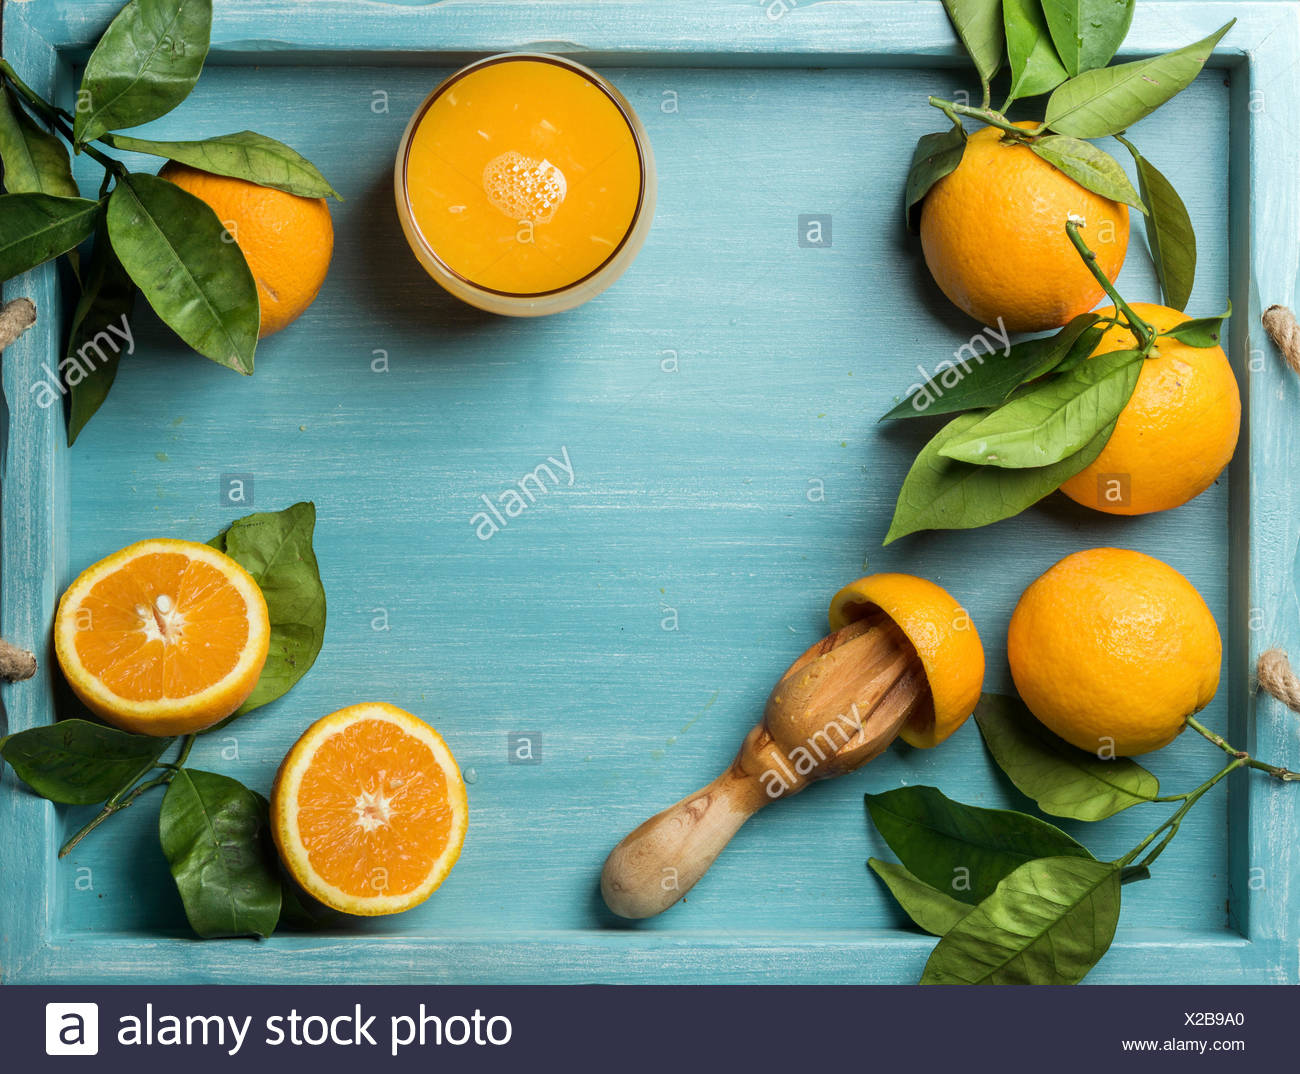 Fresh orange juice in glass and oranges with leaves on wooden turquoise blue painted background. Top view, copy space - Stock Image